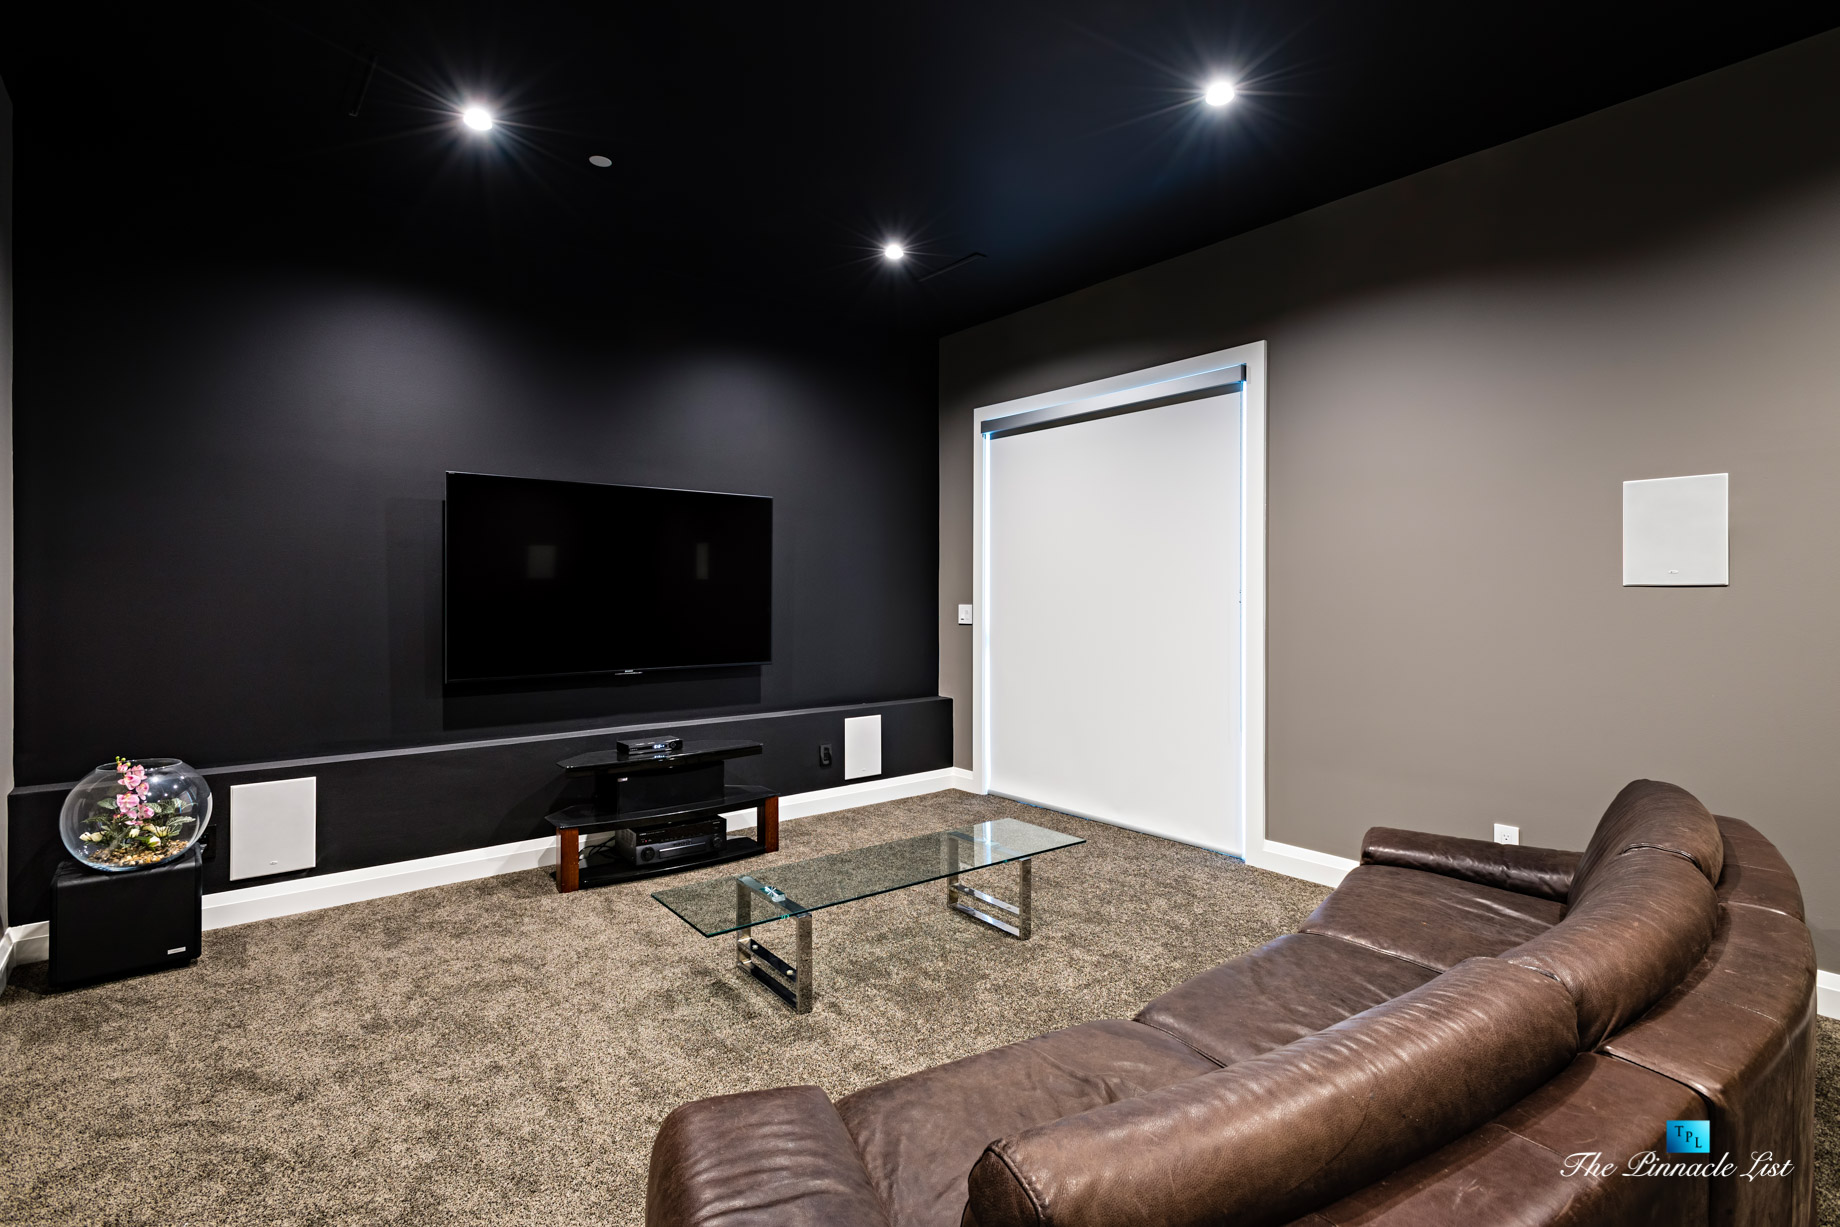 1083 Uplands Dr, Anmore, BC, Canada - Private Theatre Room - Luxury Real Estate - Greater Vancouver West Coast Modern Home